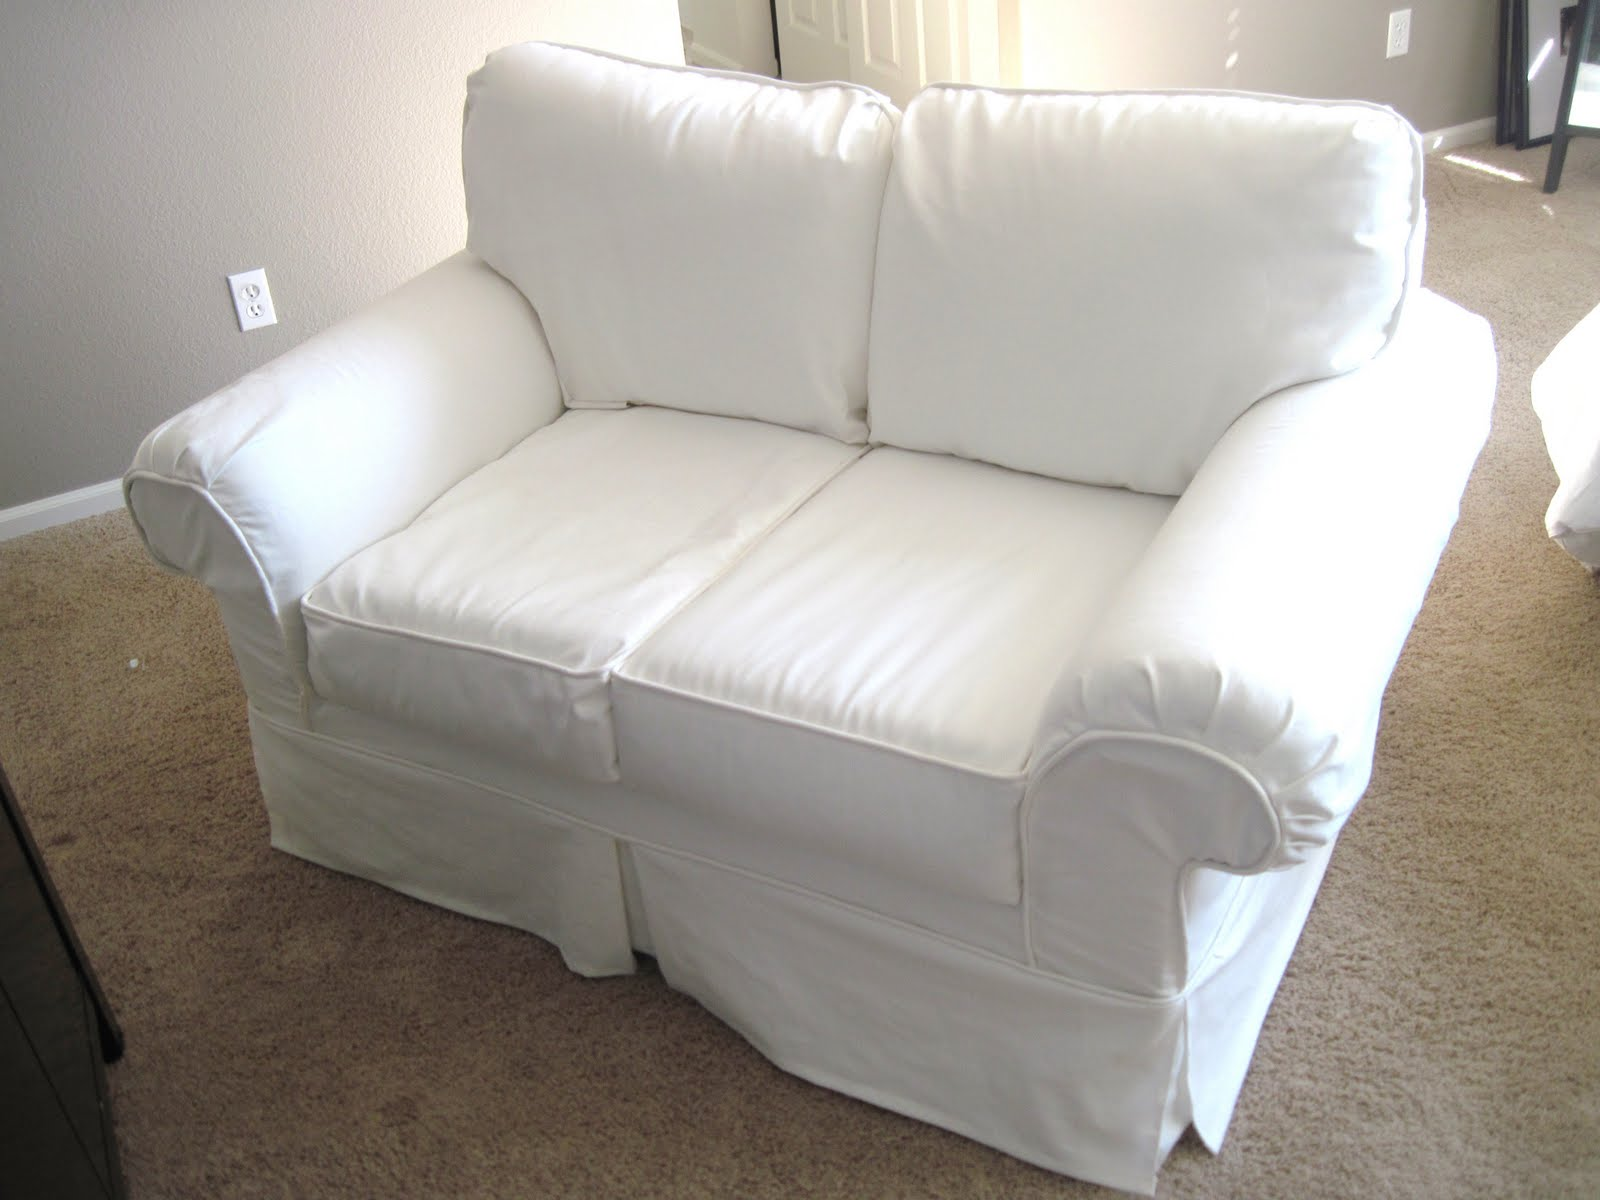 Couch And Chair Covers Love Seat Slip Covers For Stunning Outlook In The Living